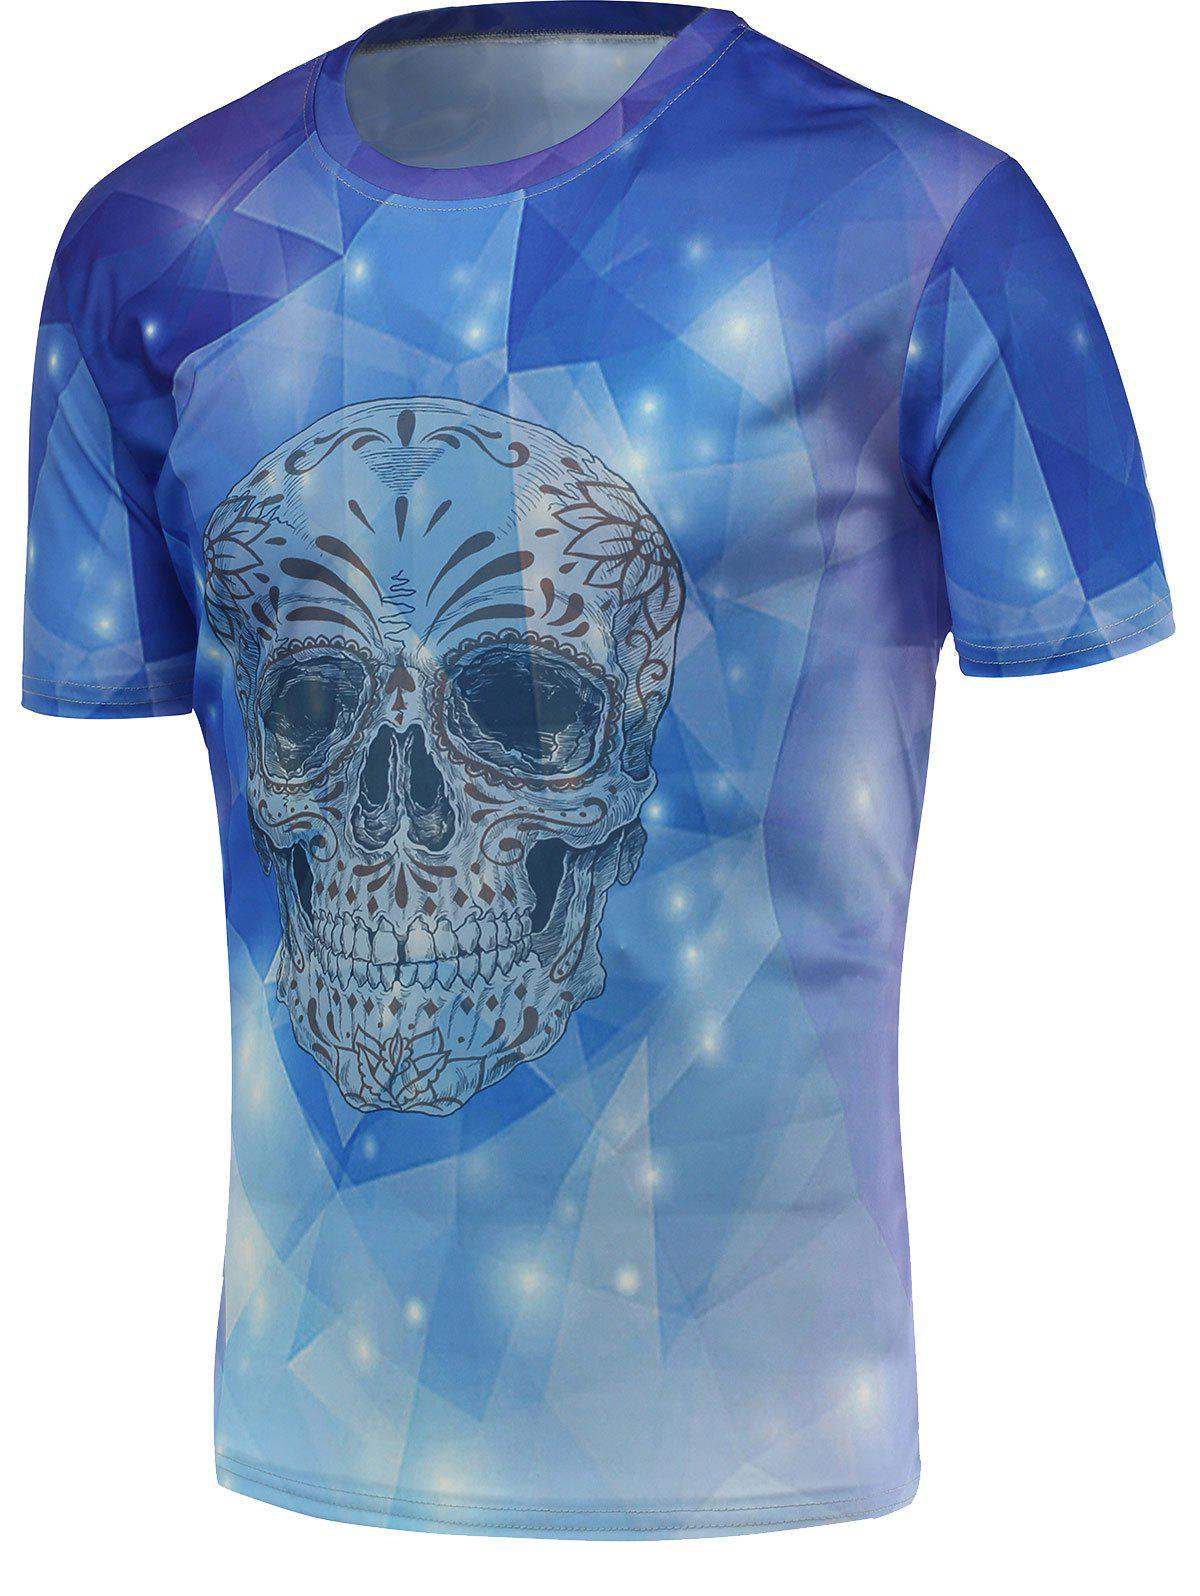 Fashion 3D Skull Print Round Neck Short Sleeves T-Shirt For Men - BLUE 3XL